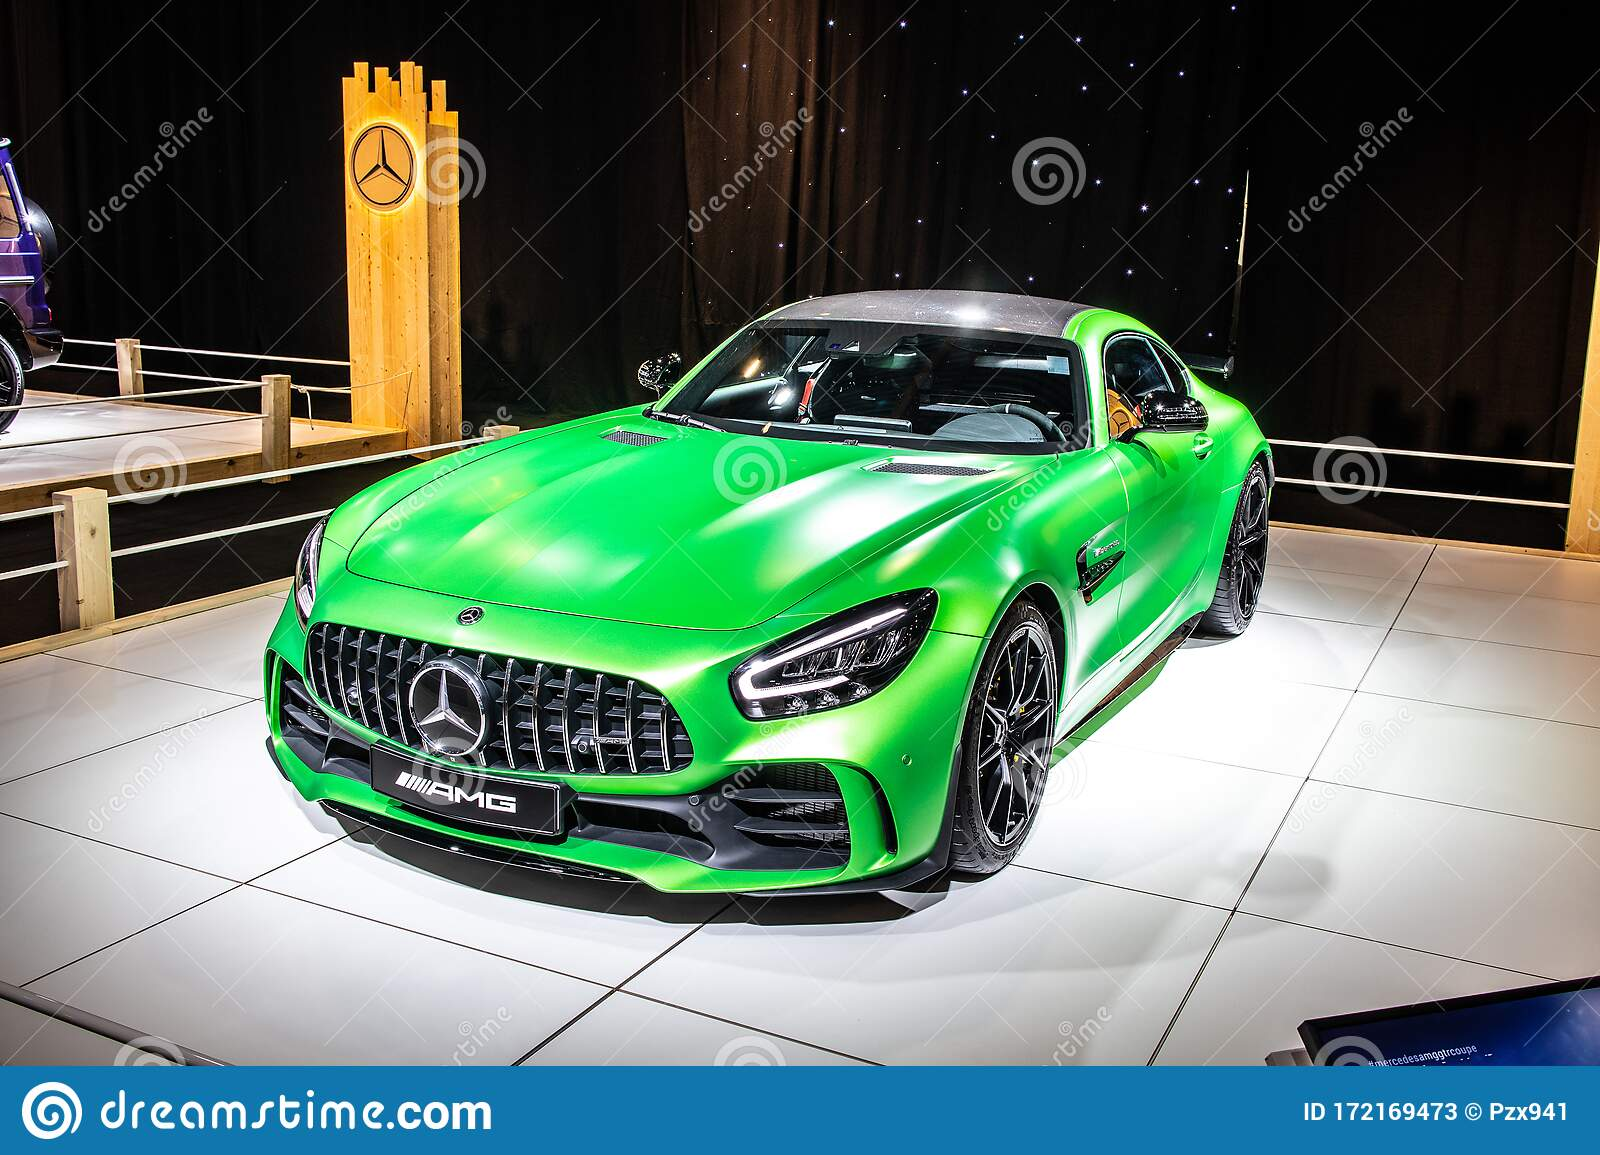 Mercedes Amg Gt R Roadster V8 Bi Turbo With M178 Engine Brussels Motor Show High Performance Sport Car Produced By Mercedes Benz Editorial Stock Photo Image Of Benz Shiny 172169473